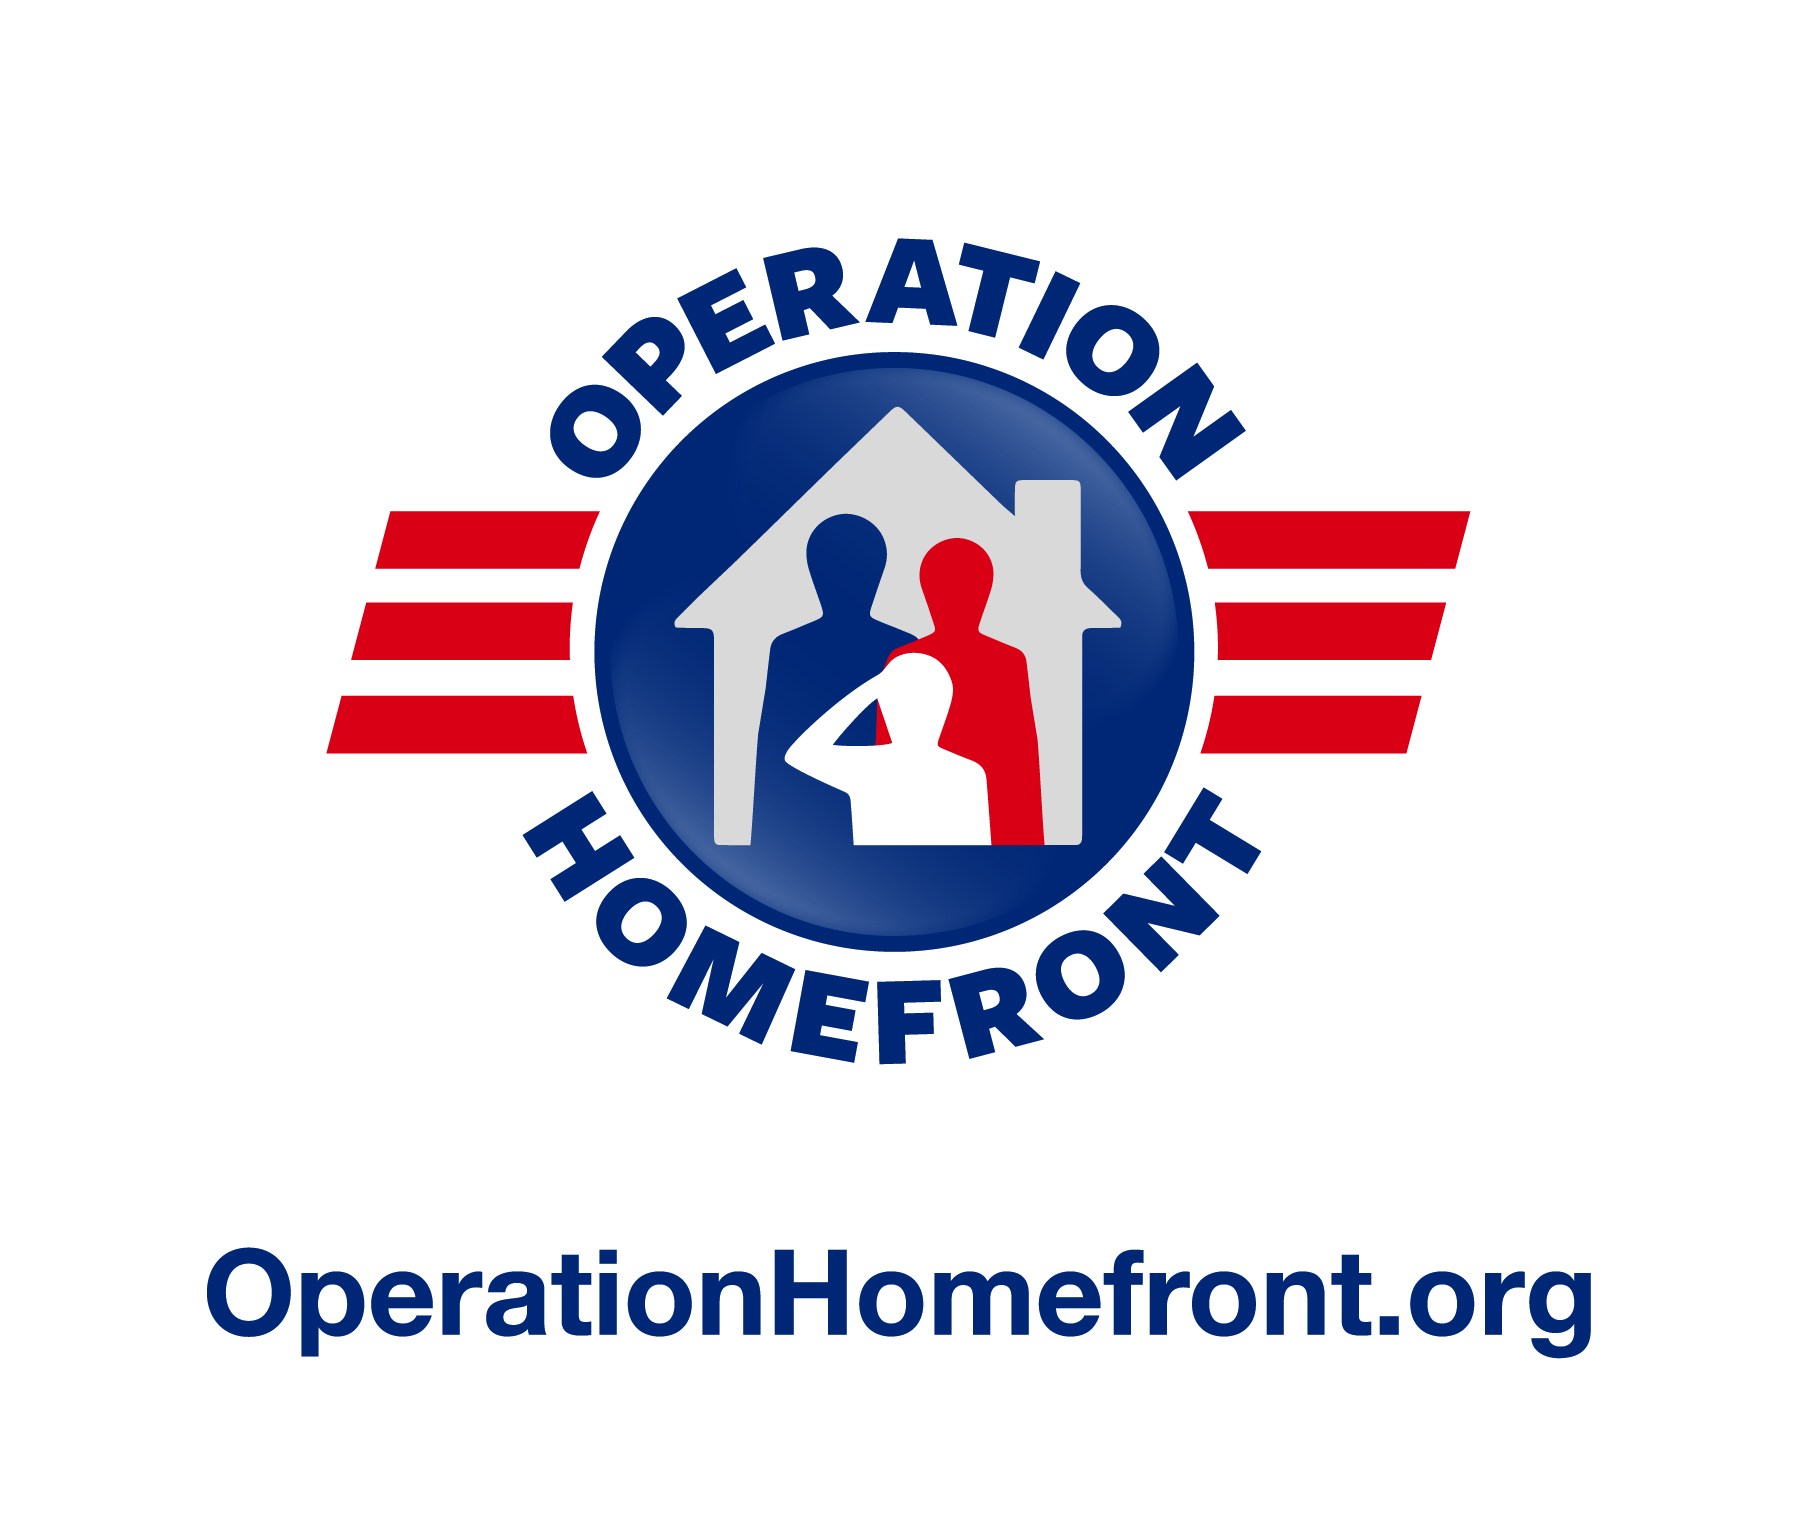 Operation Homefront, Inc